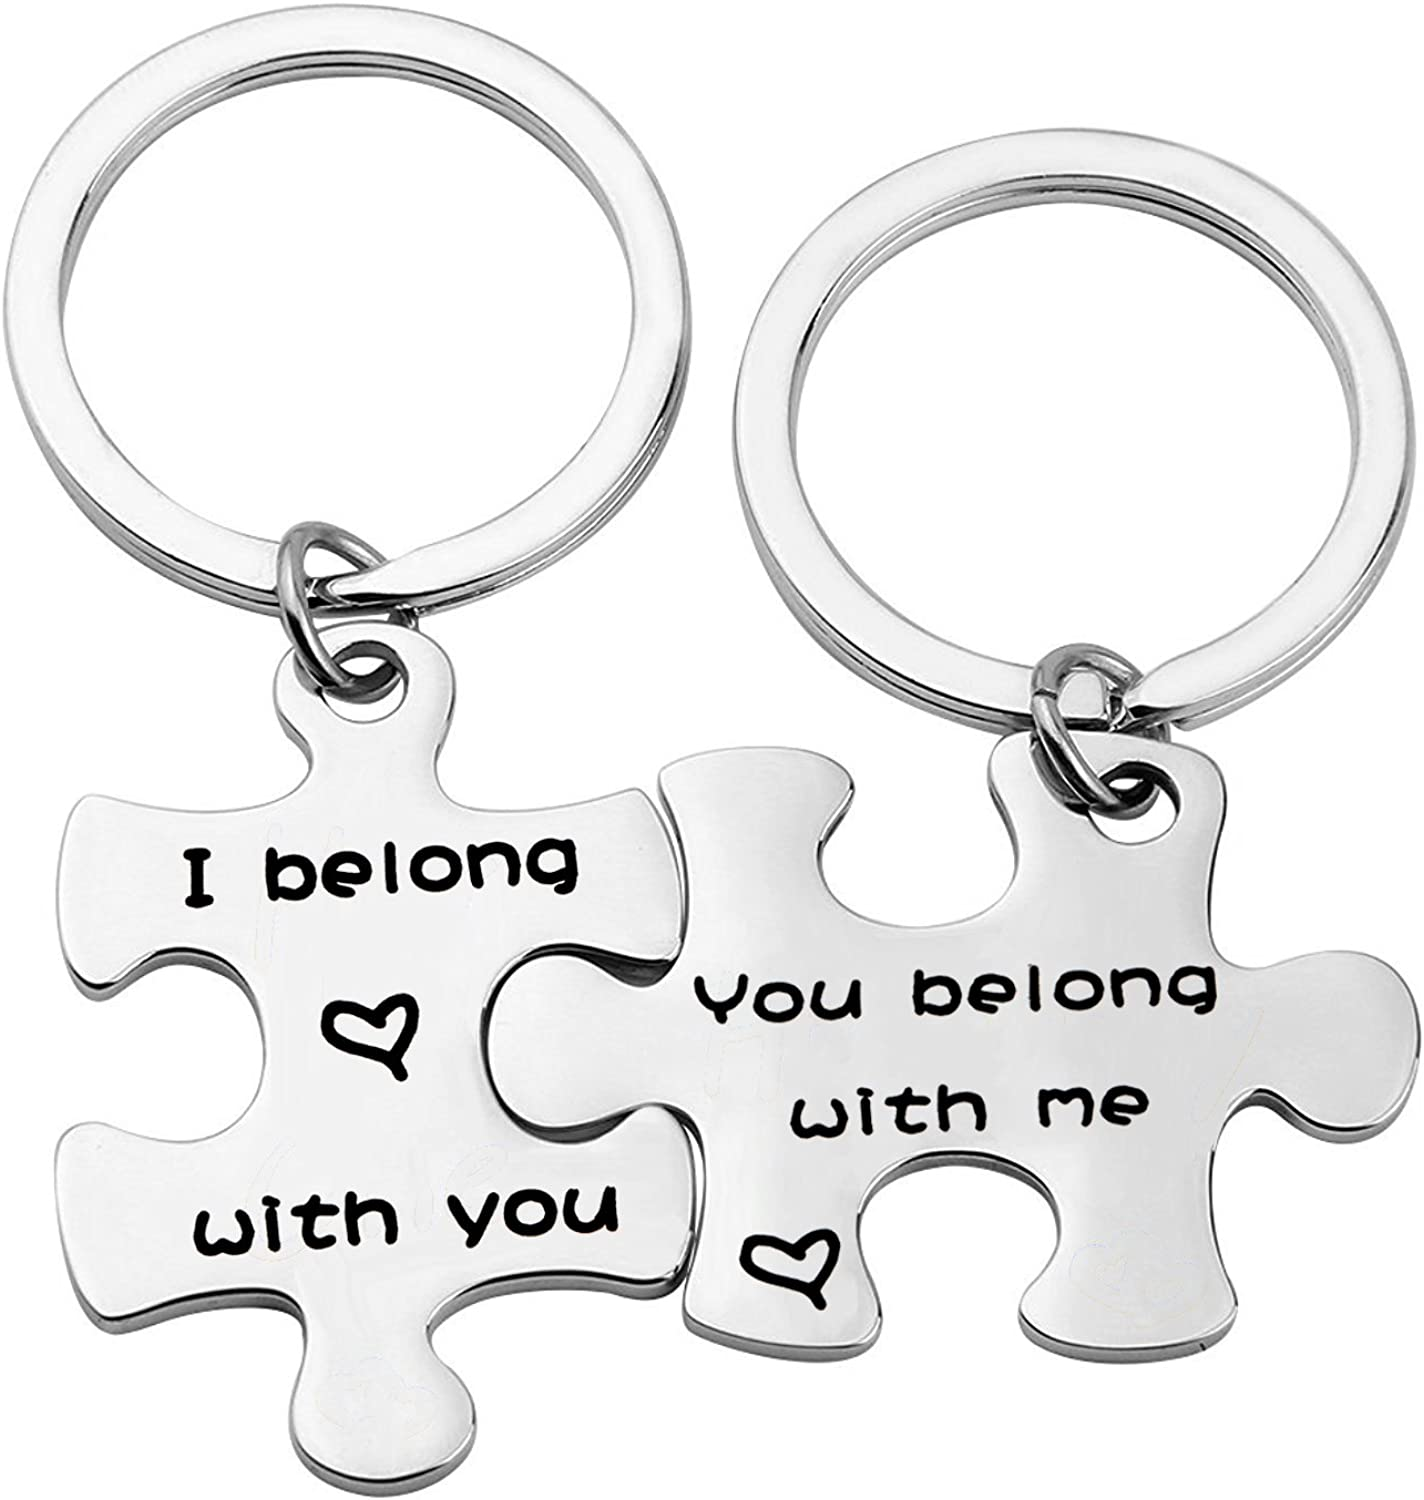 Gzrlyf Couple Keychain Puzzle Piece Gift His and Hers Keychains I Belong with You Belong with Me Keychain Wedding Gift